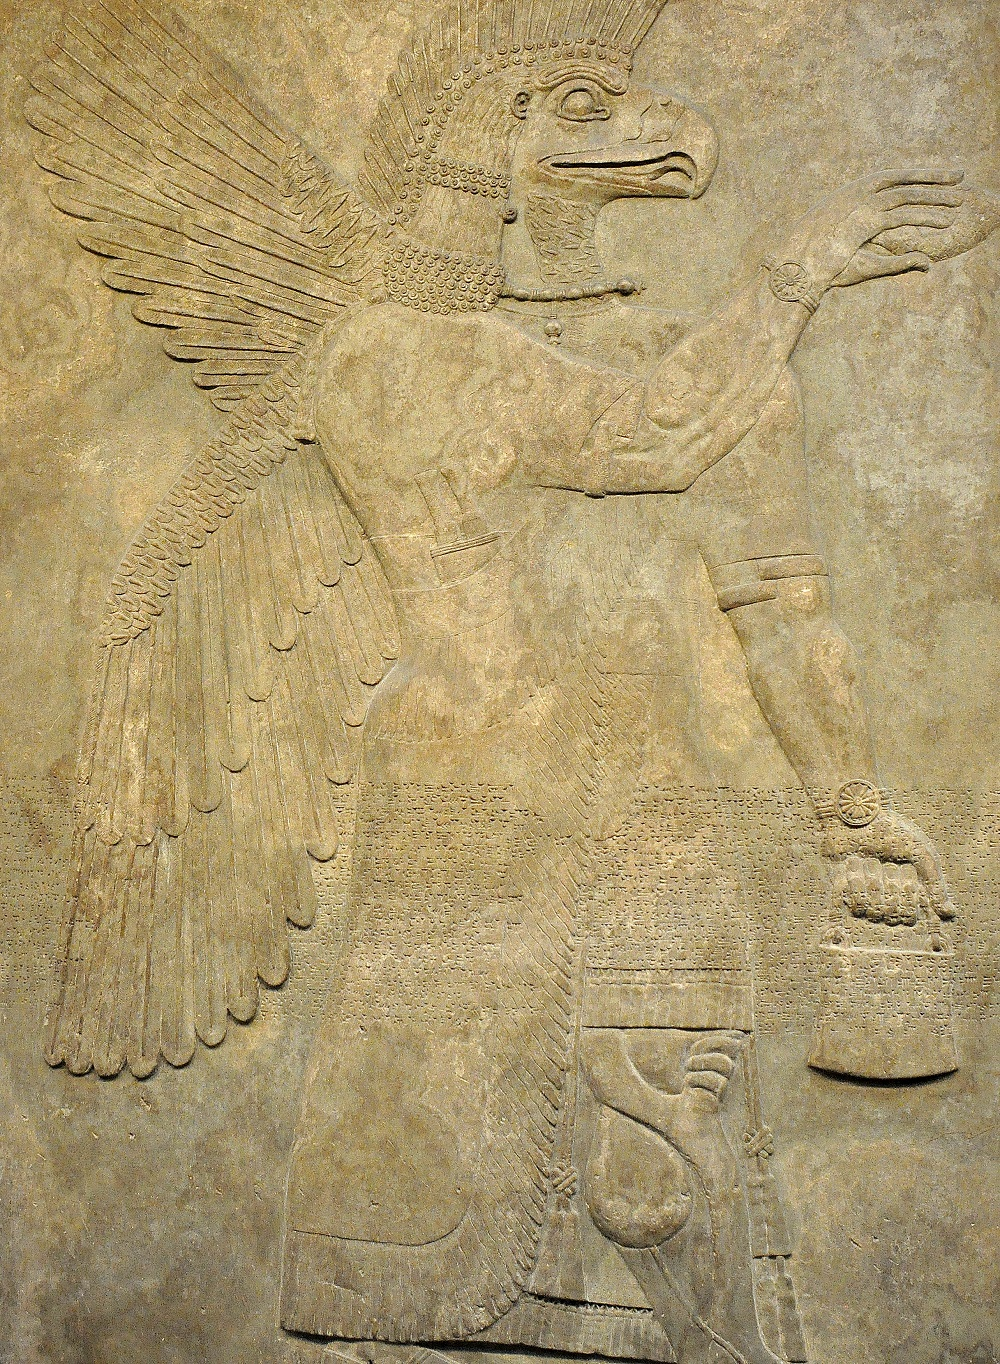 Neo-Assyrian wall relief depicting an eagle-headed apkallu (sage) | In the British Museum, from the Palace of Ashunasirpal II at Nimrud, Iraq |  Image source